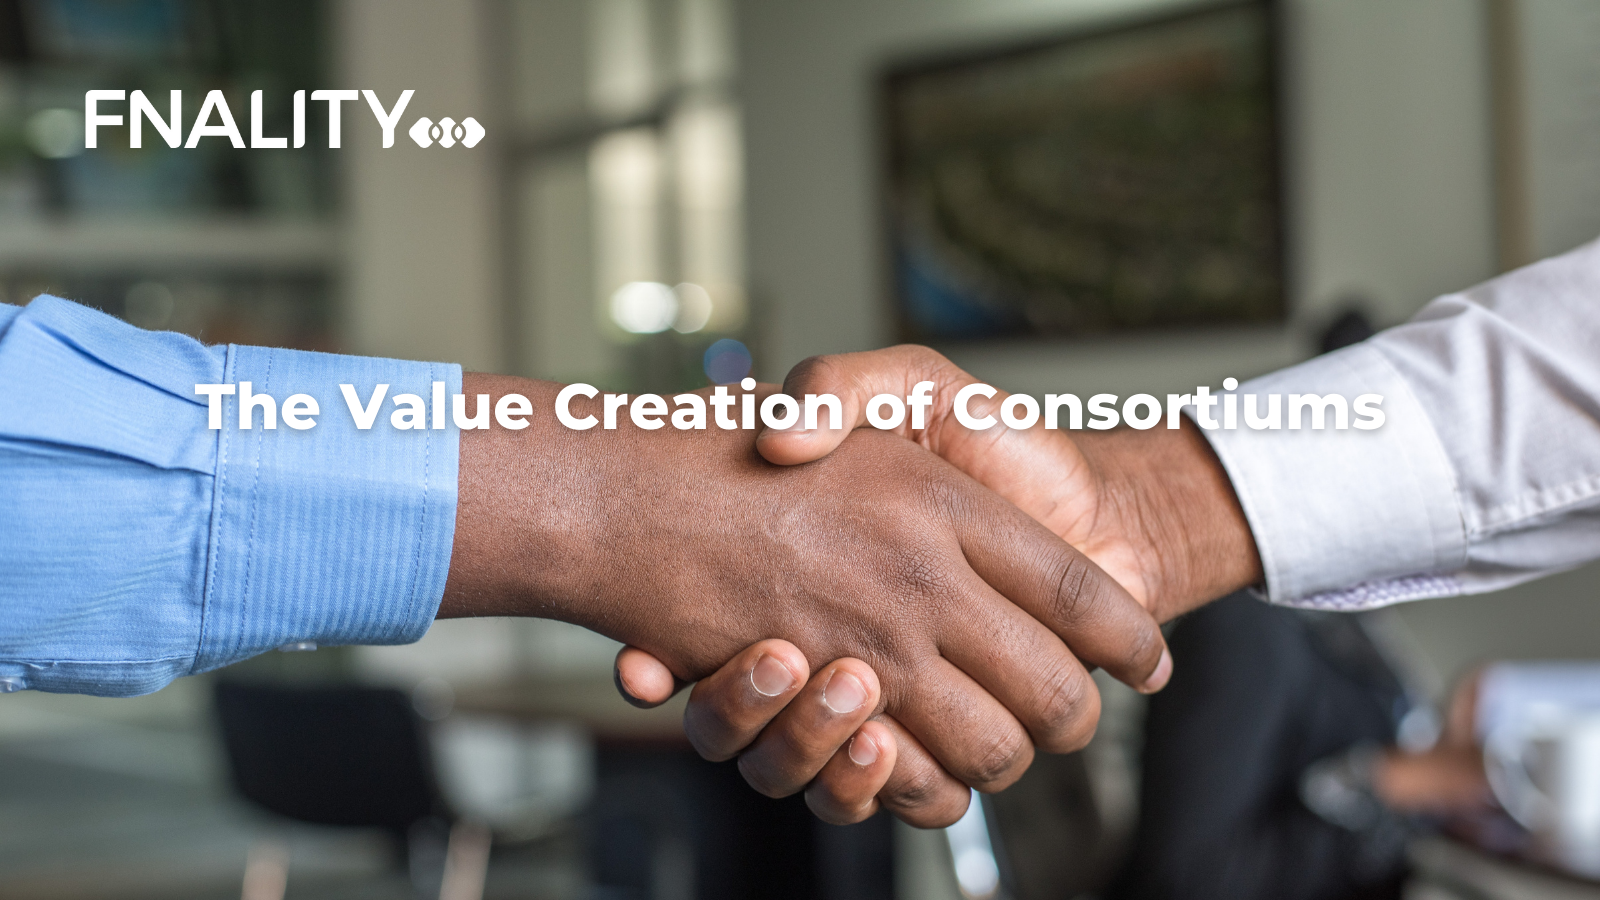 The Value Creation of Consortiums